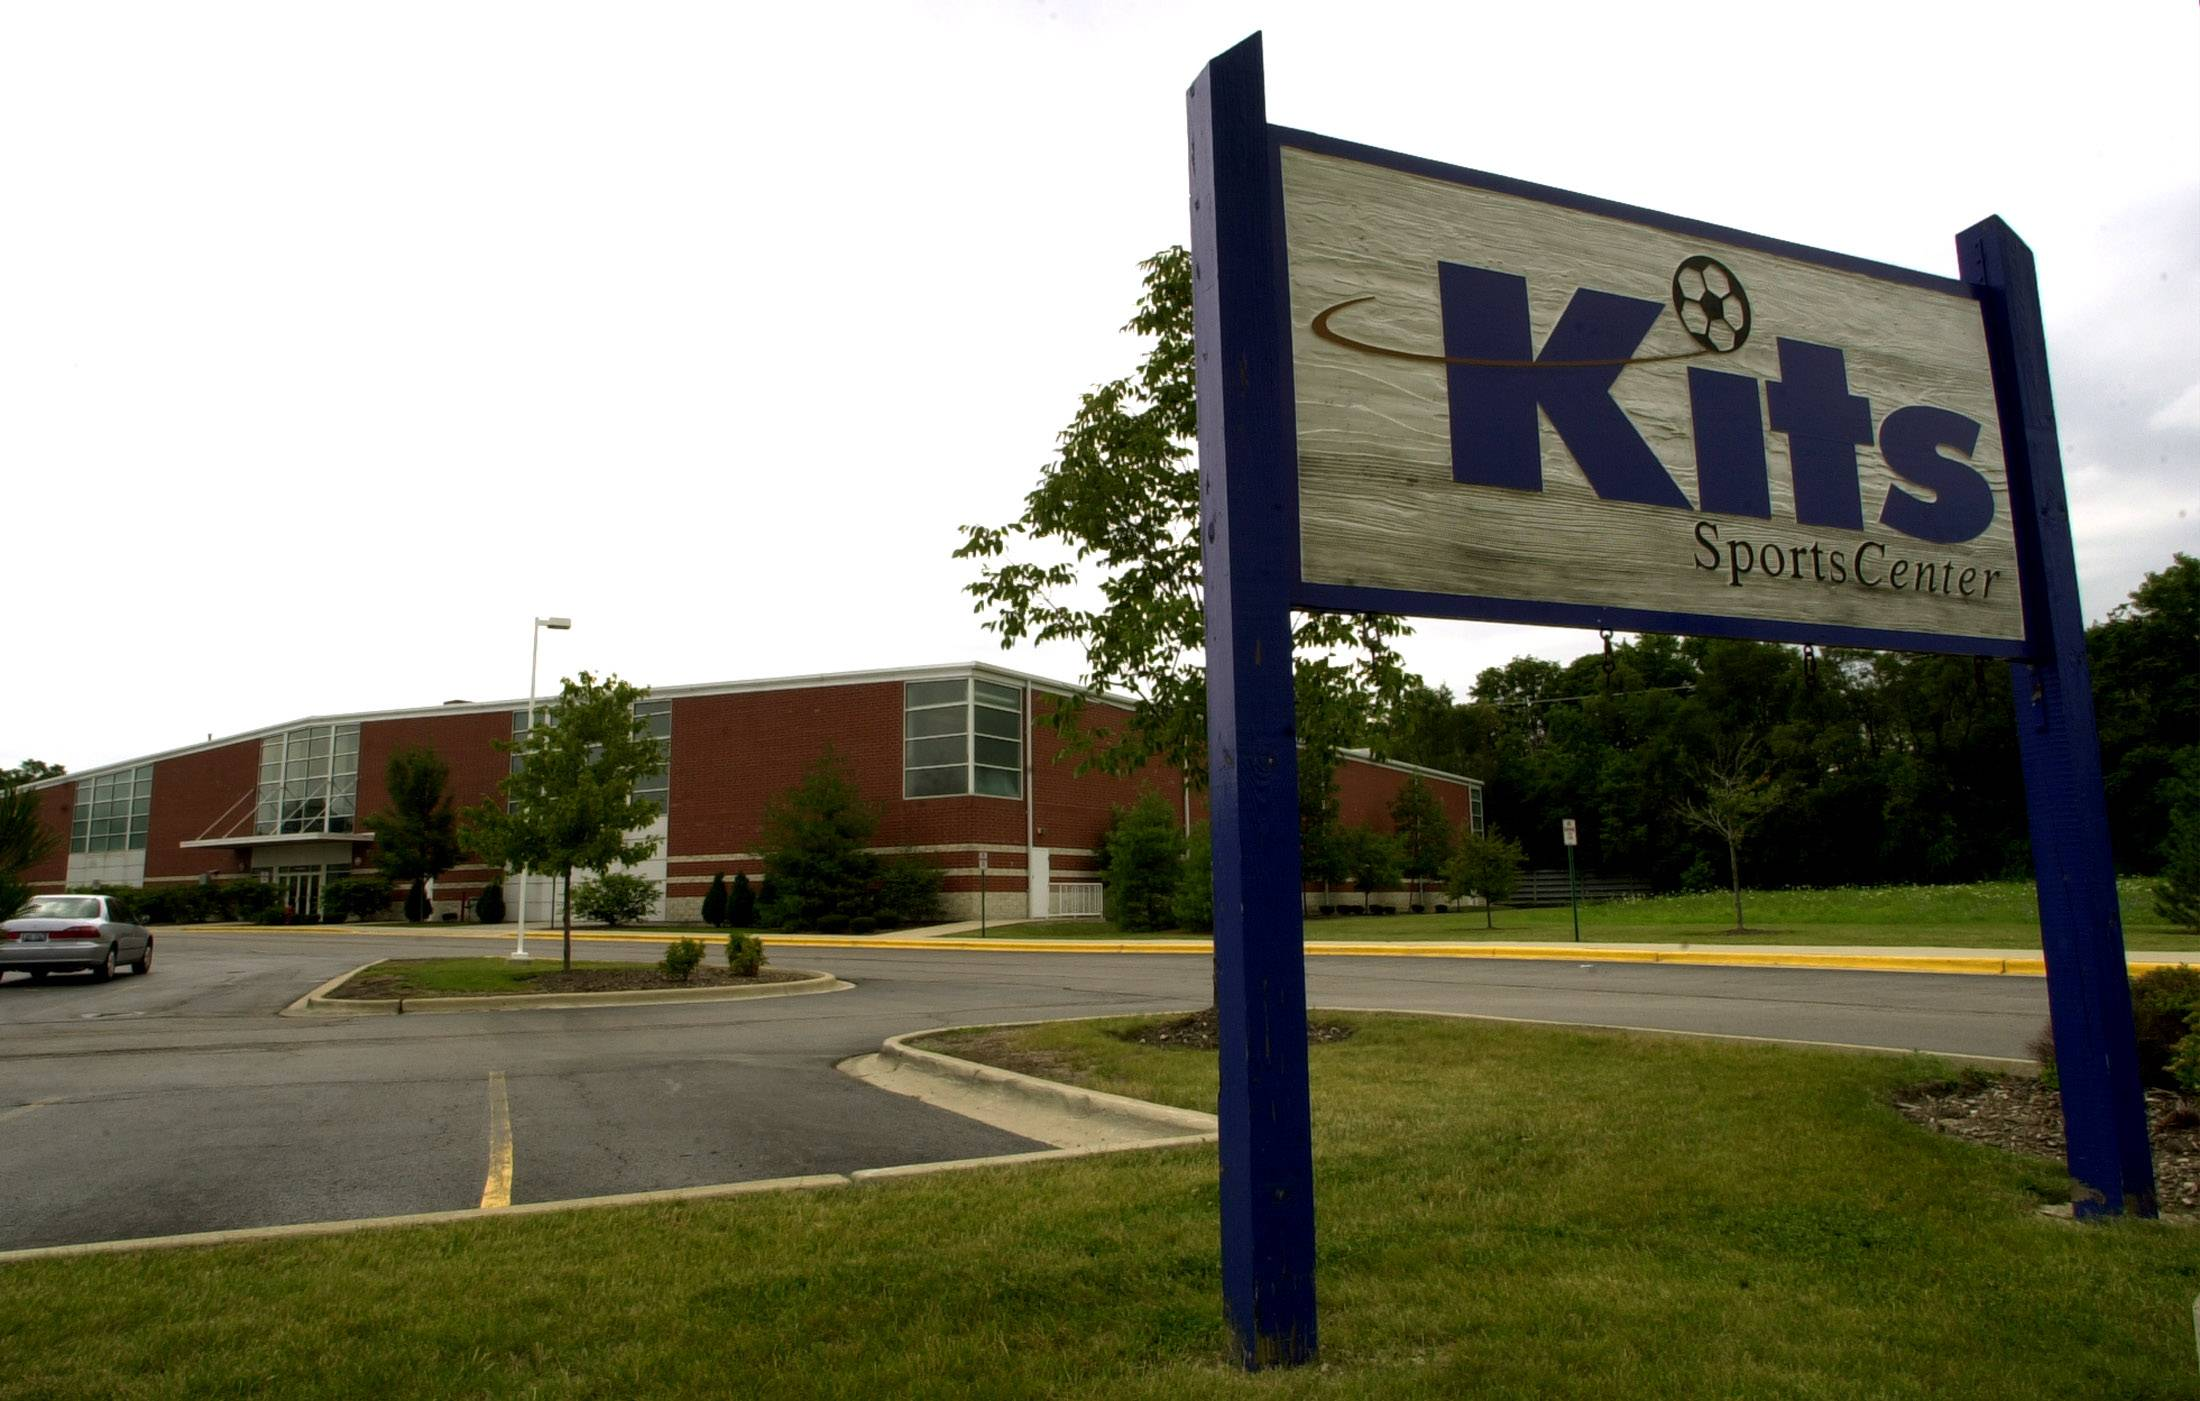 Kits Sports Center in Lake Zurich closed earlier this week.